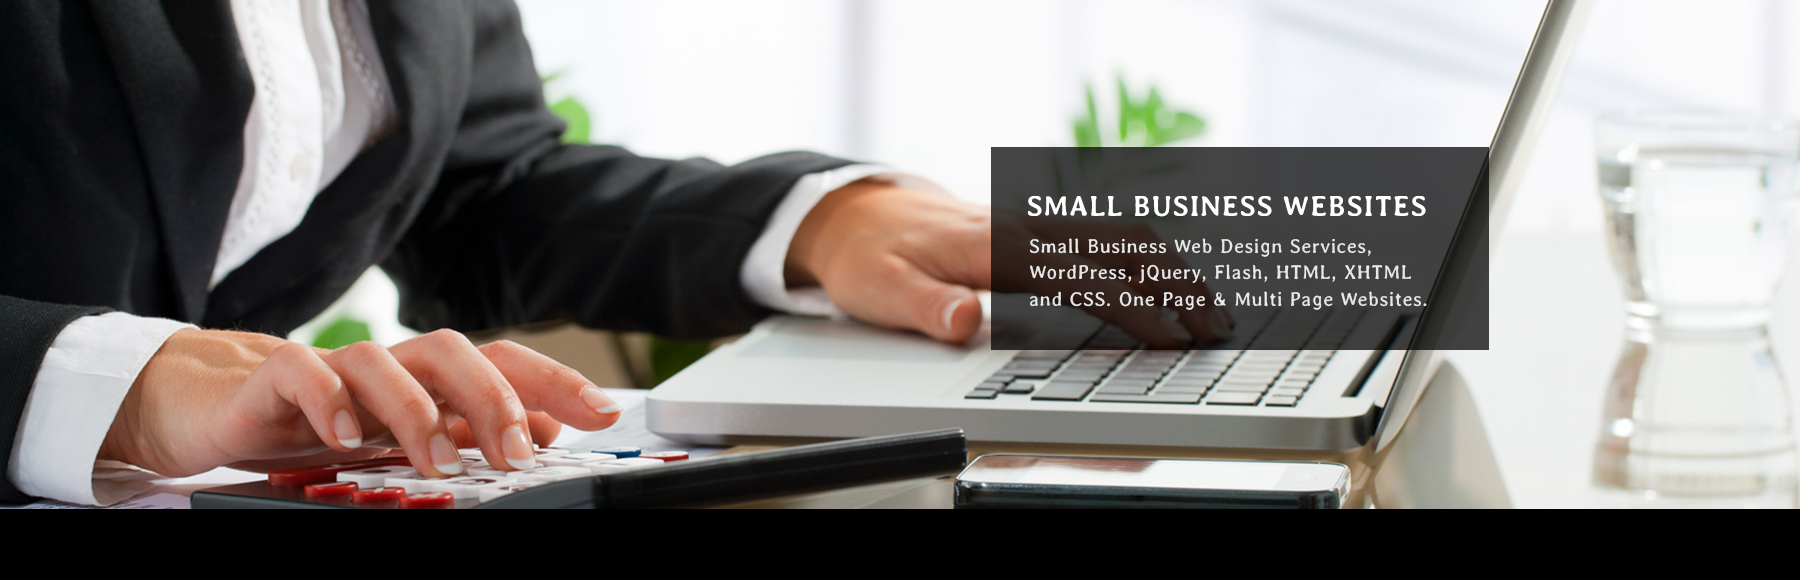 small-business-website